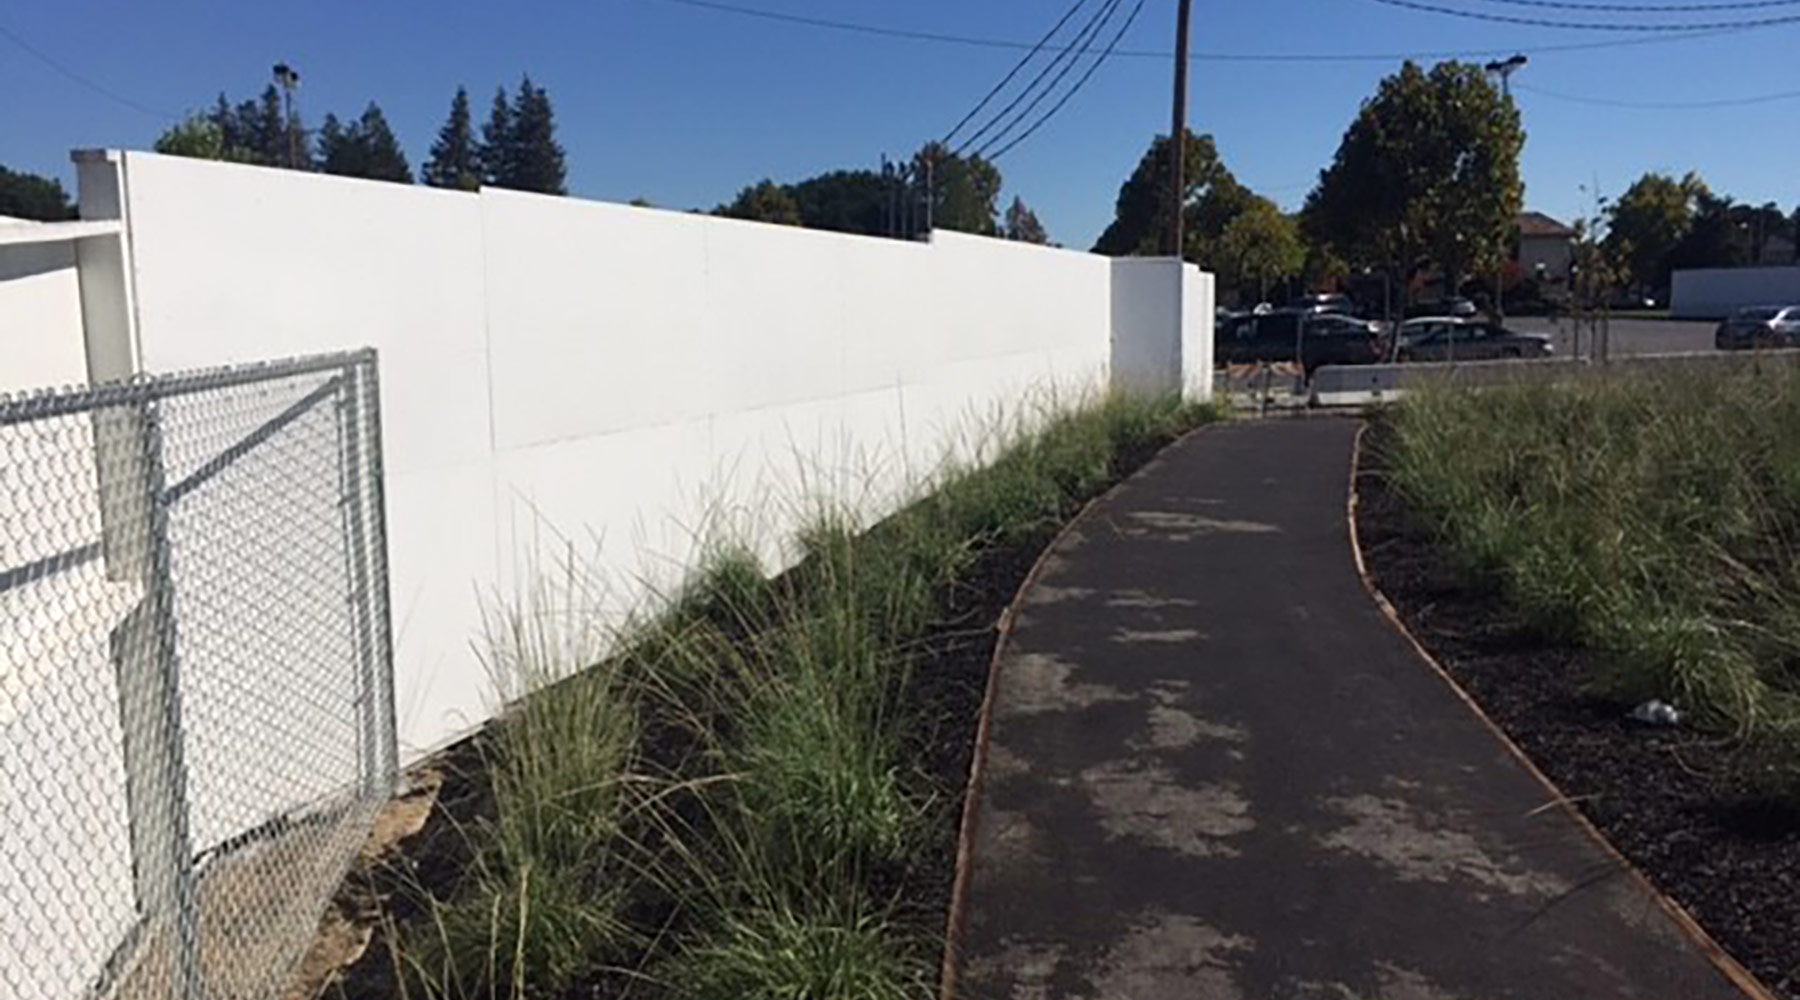 New fence installed and painted; chain link fence installed to protect drop at Macy's loading dock